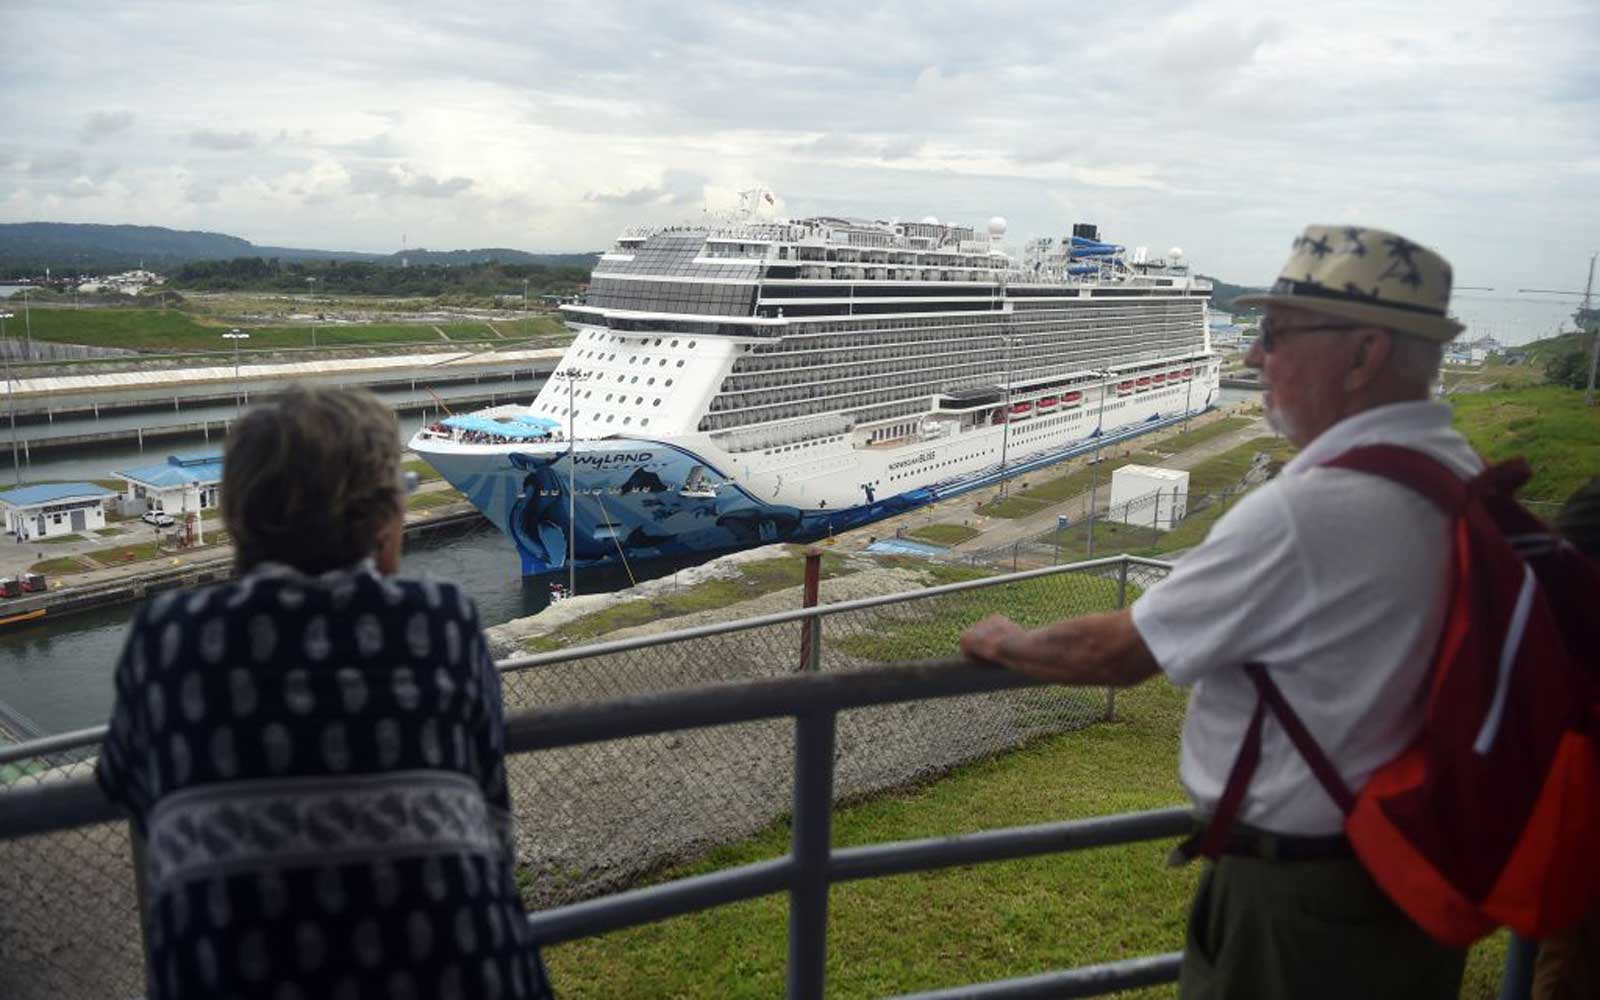 Tourists look at a cruise ship crossing the Panama Canal in the Agua Clara locks in Colon 80 km northwest from Panama City